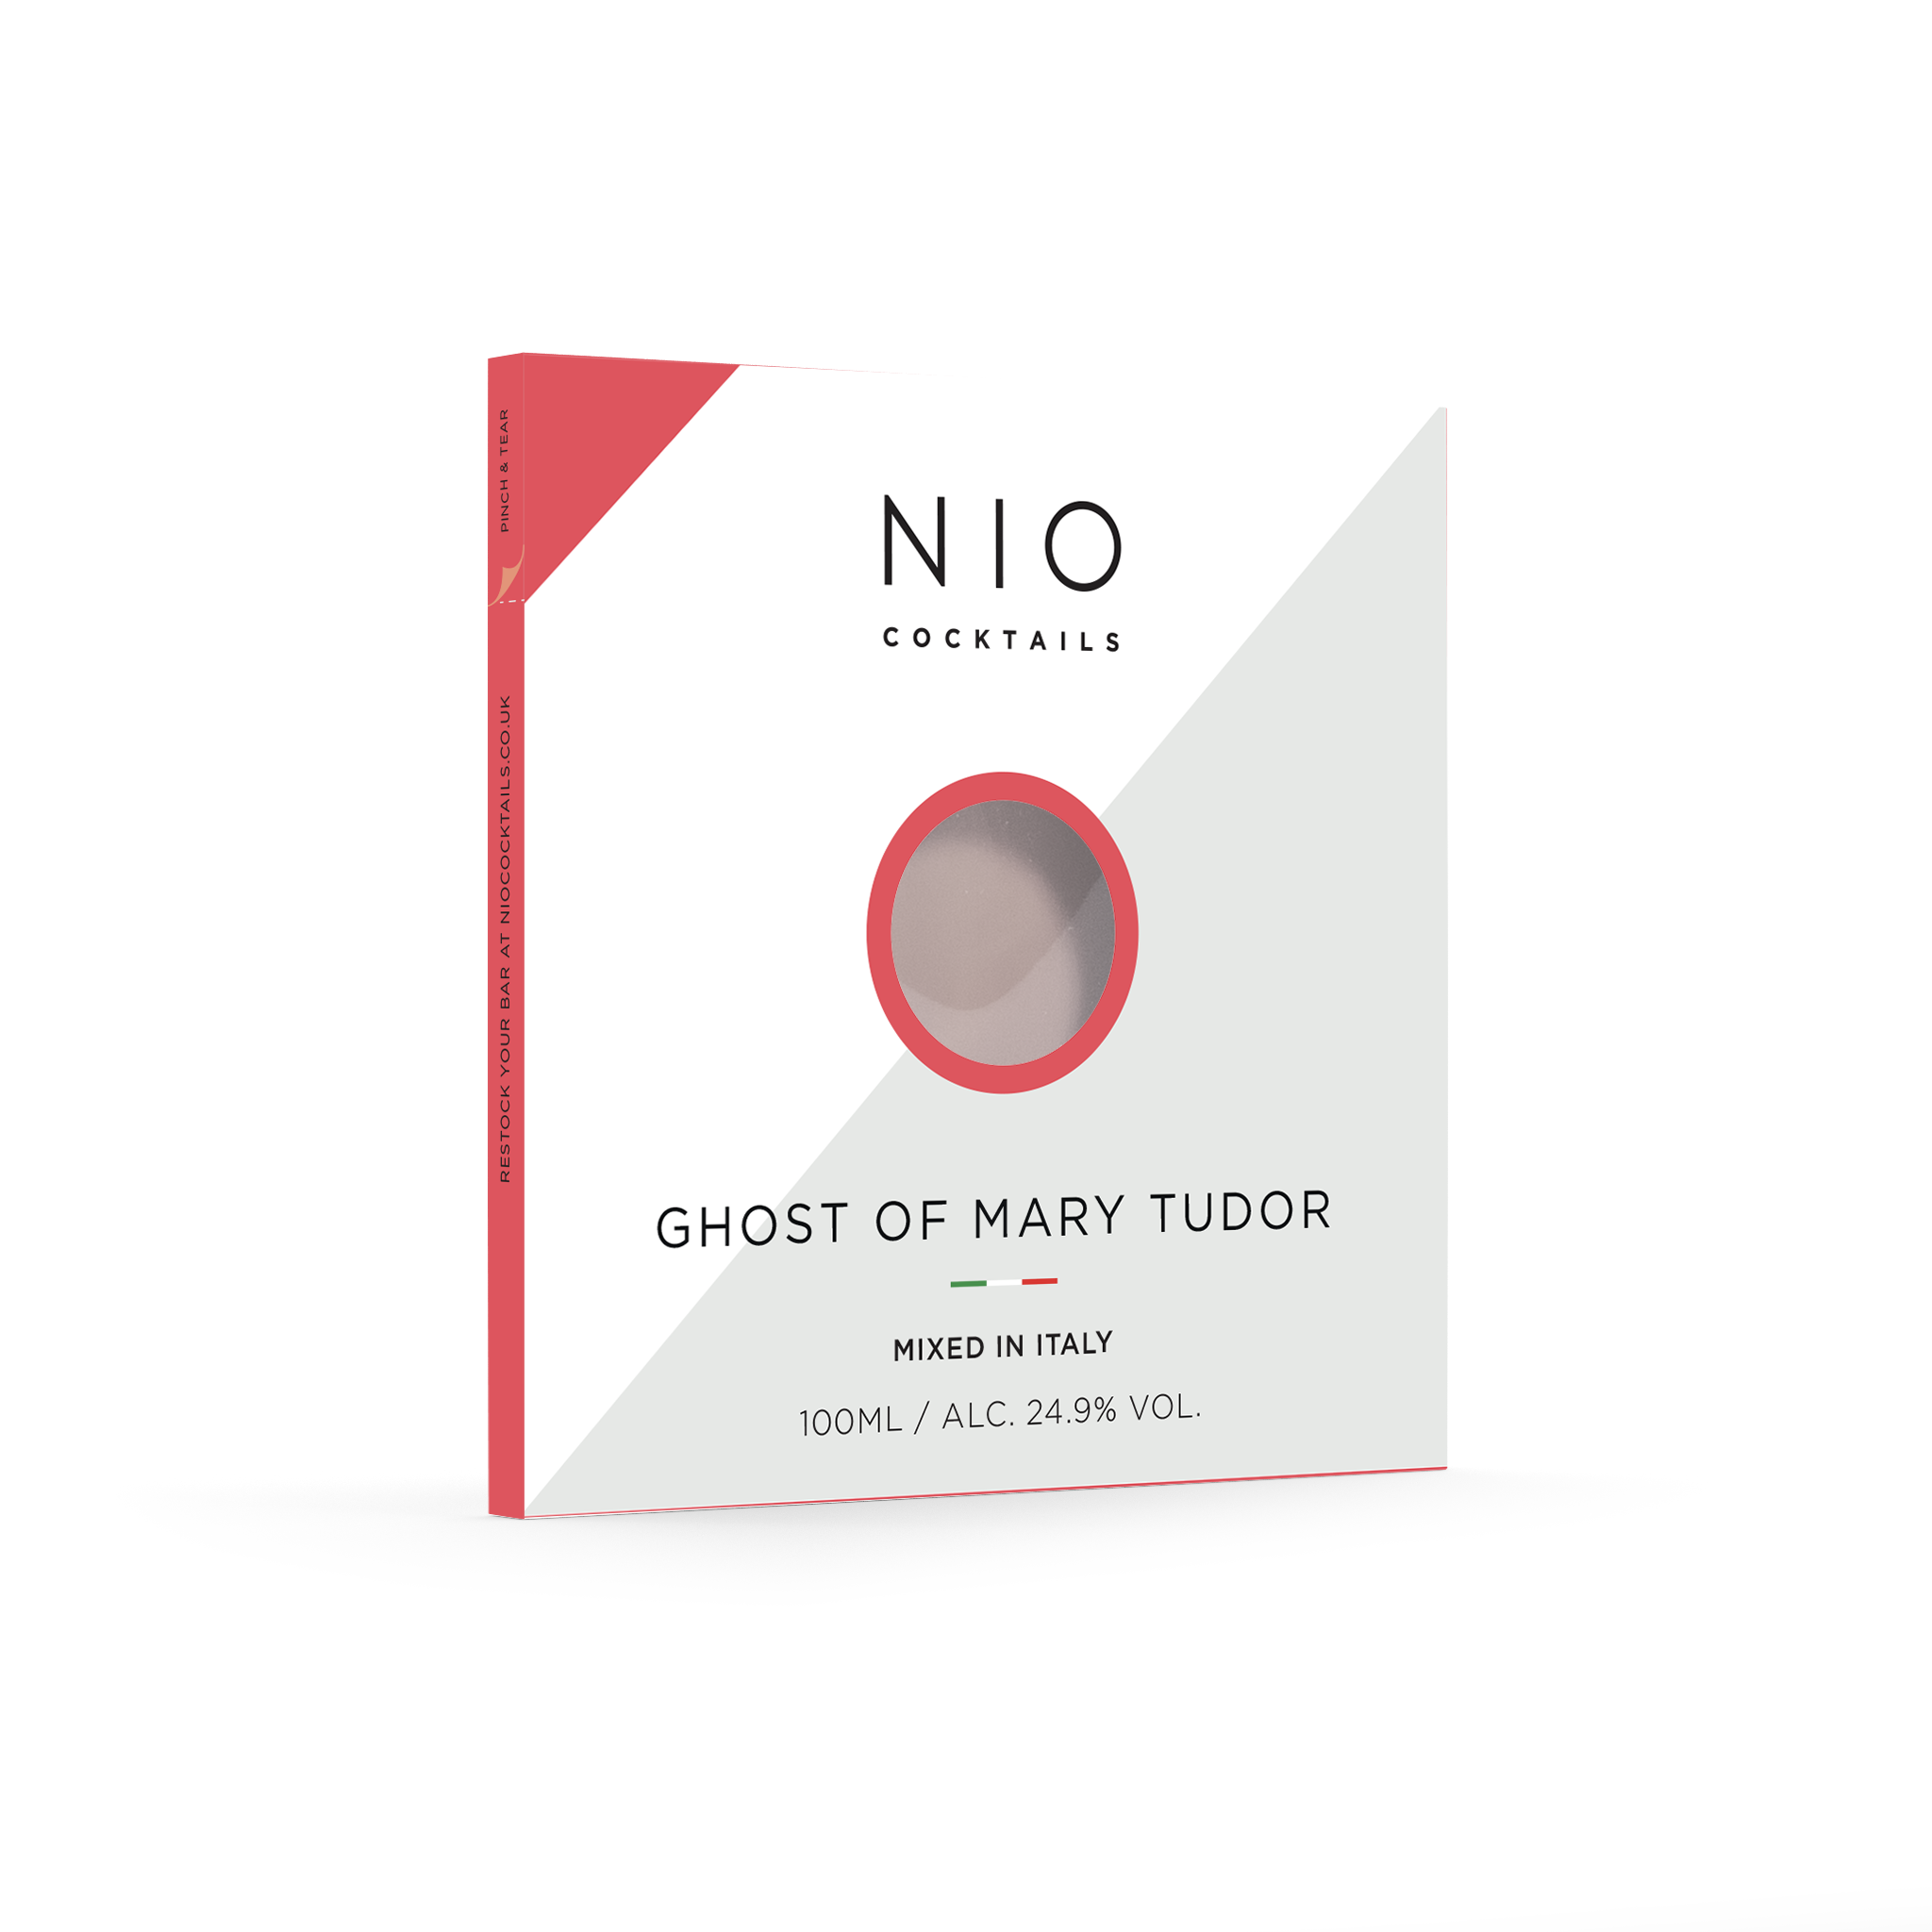 Ghost of Mary Tudor